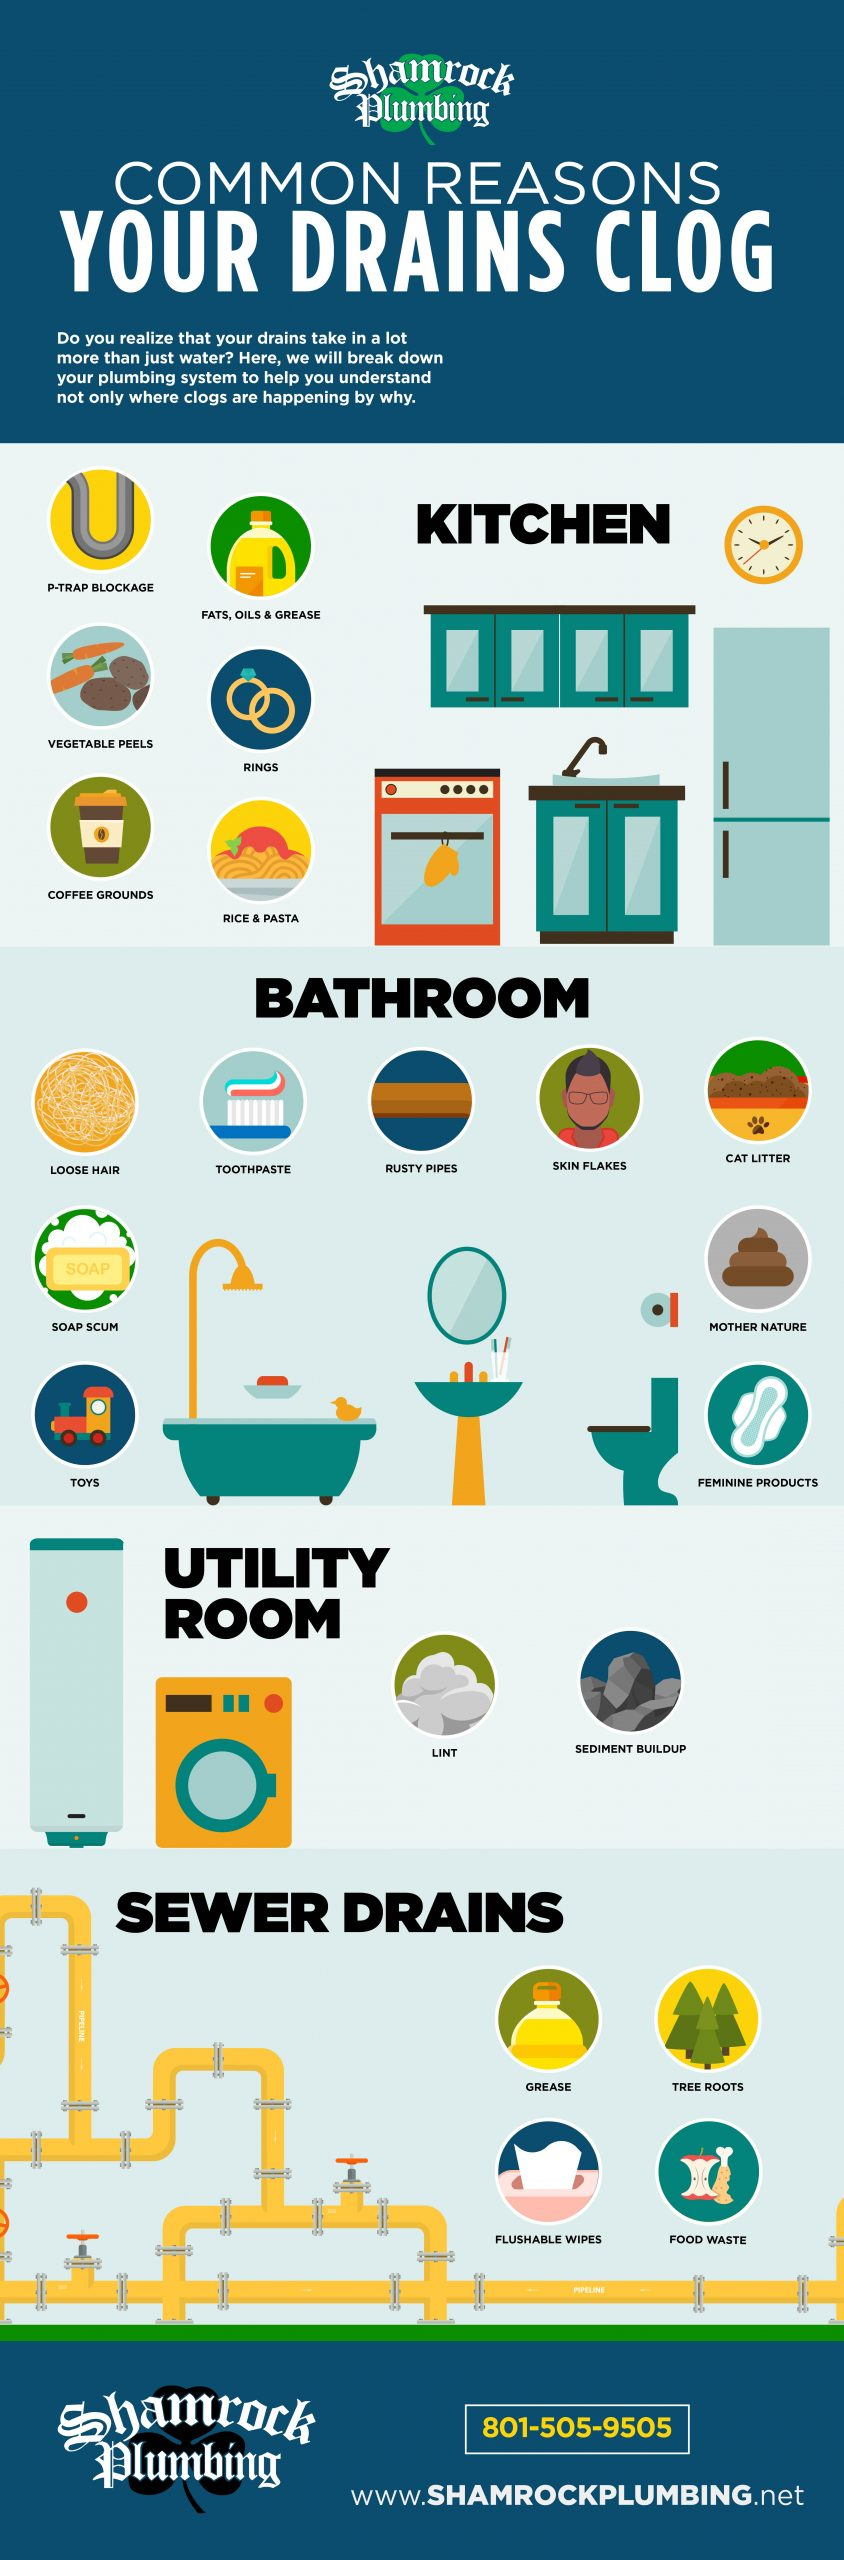 common reasons drains clog infographic